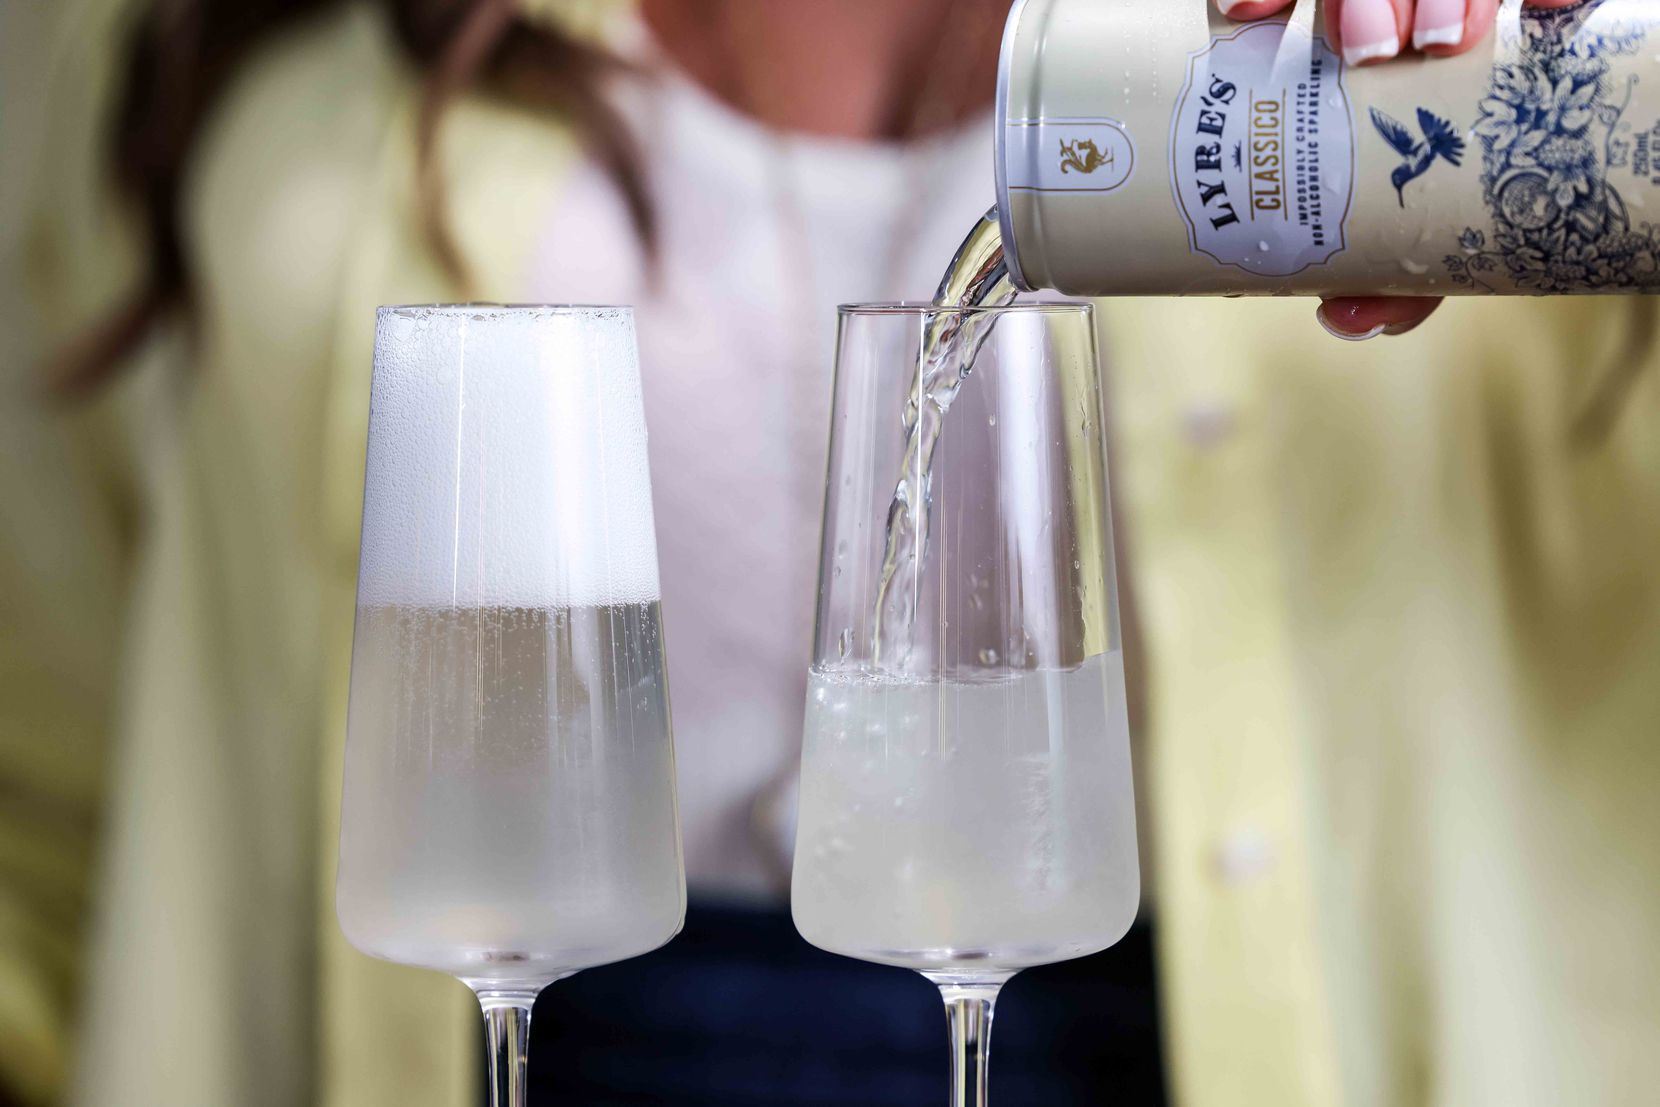 French 86, an alcohol-free beverage by Beth Hutson